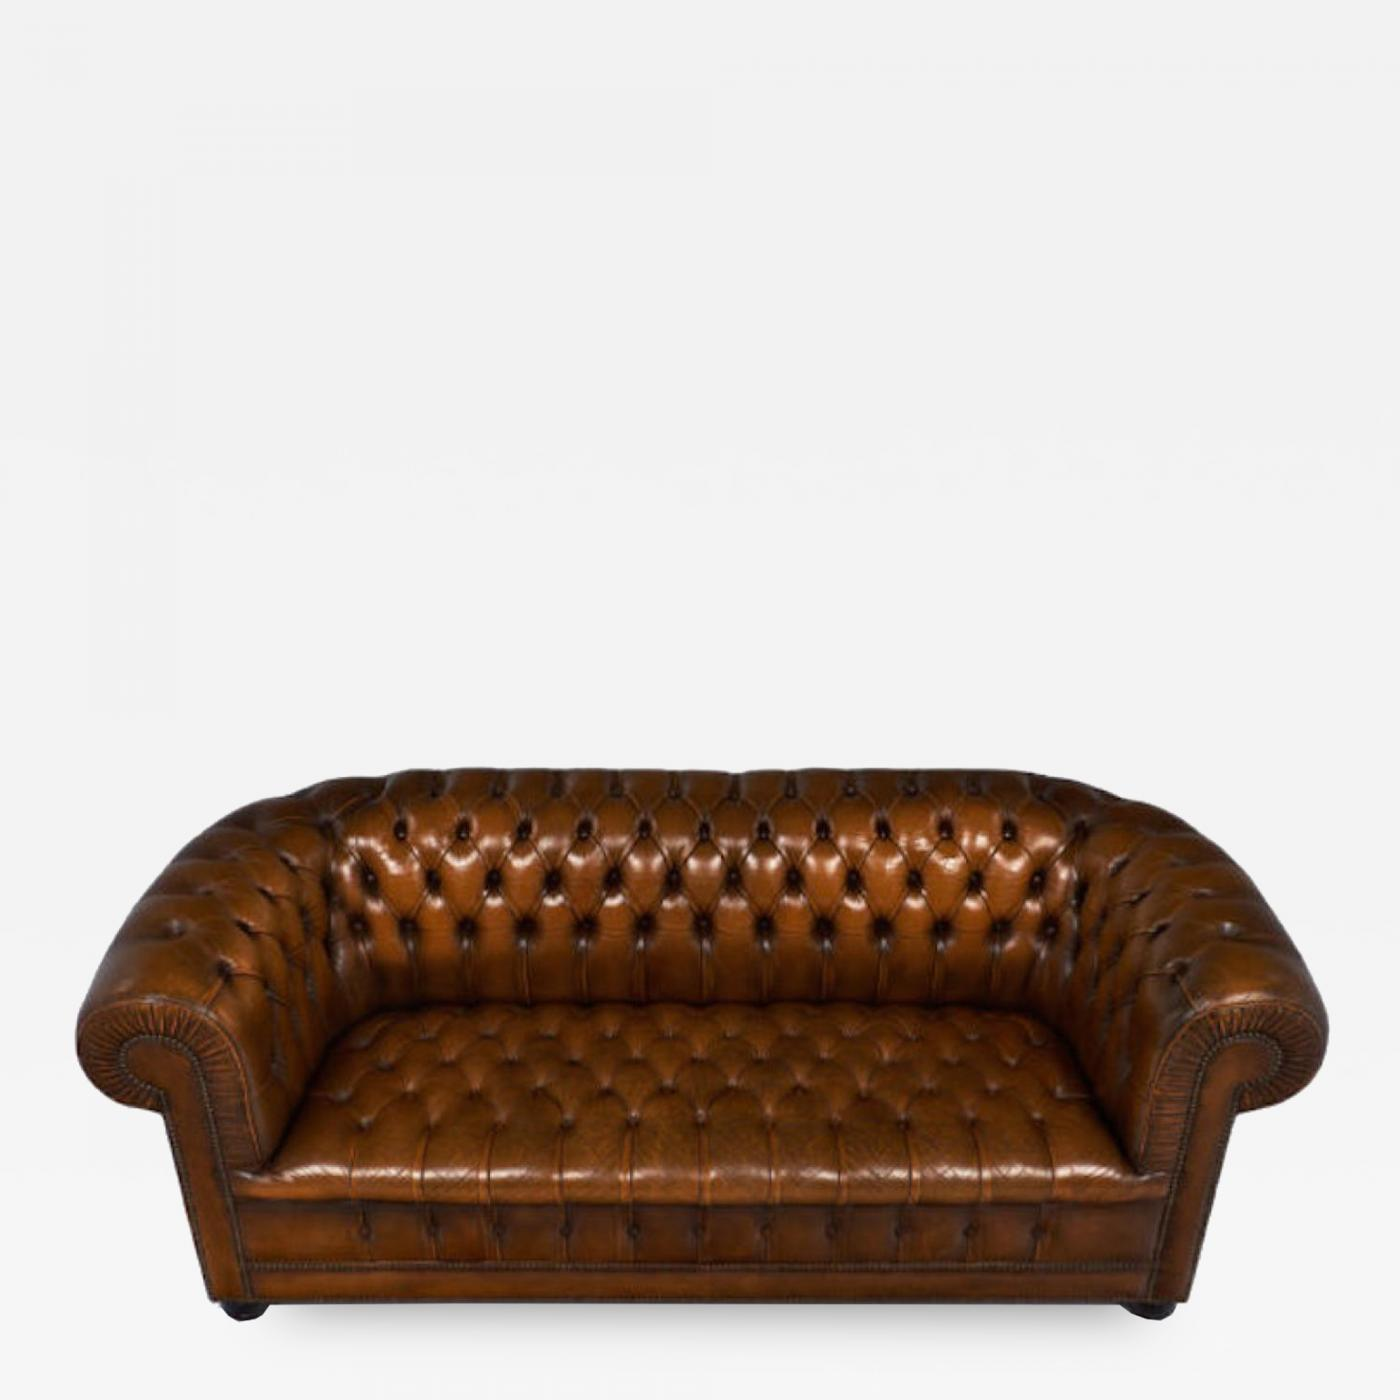 Super Cognac Leather English Chesterfield Sofa Gmtry Best Dining Table And Chair Ideas Images Gmtryco